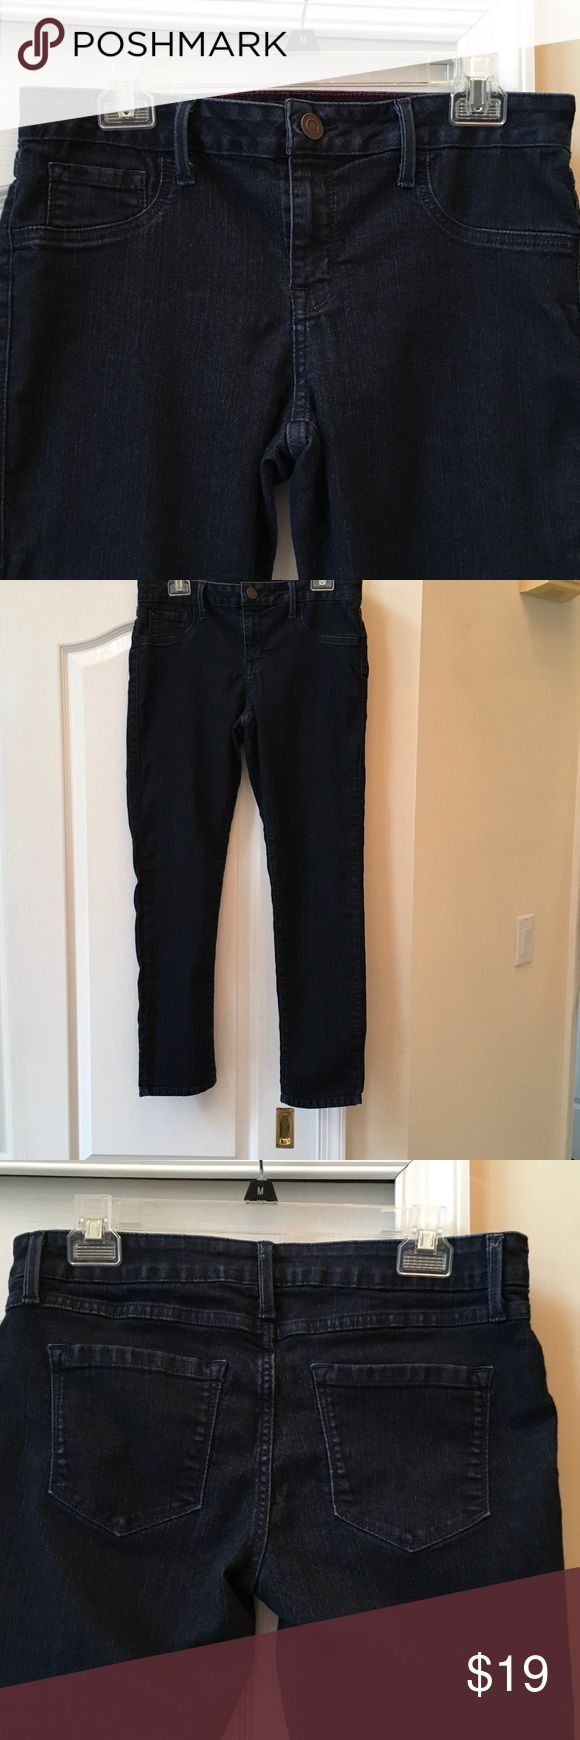 Ana Petite skinny jeans, 12 P Great dark denim Ana jeans. Mid rise in a comfy Cotton/Poly/Spandex blend. I Sean measures 28, waist is 16 across front. Great condition, like new! ana Jeans Skinny